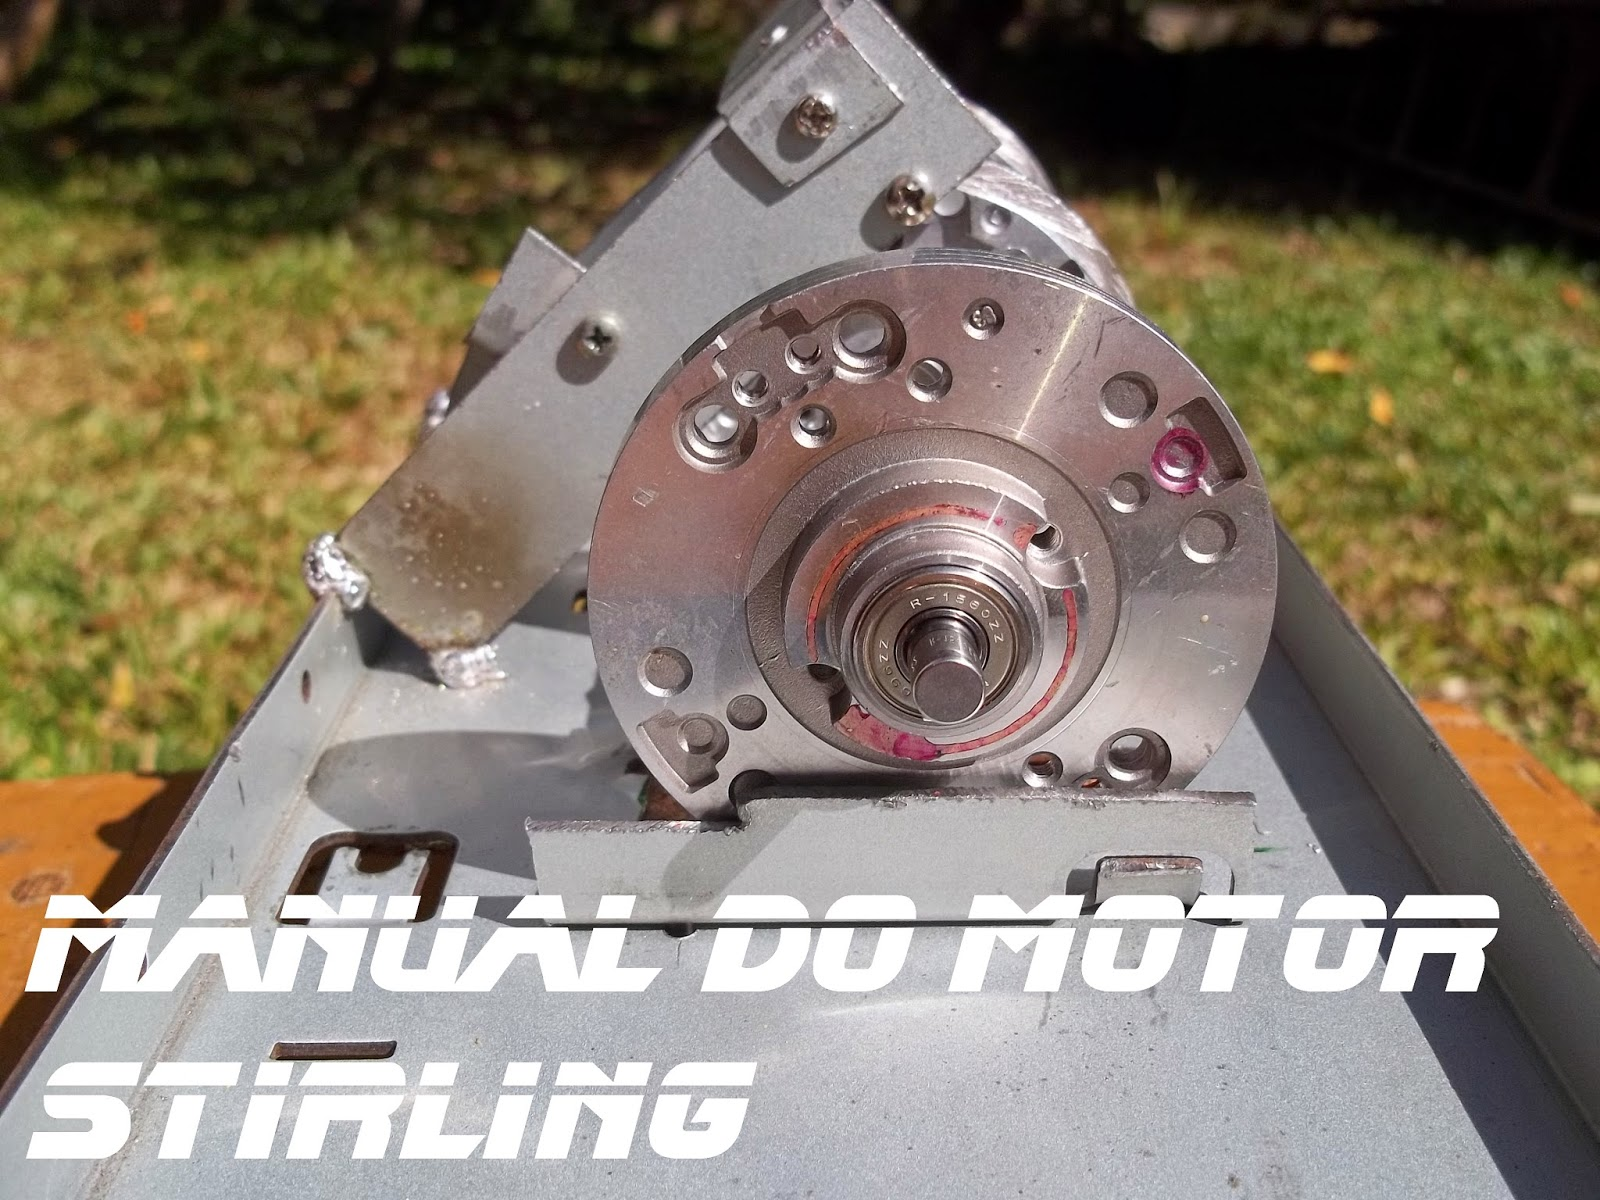 Fixação do terceiro cabeçote de vídeo cassete sobre a base do motor, Manual do motor Stirling